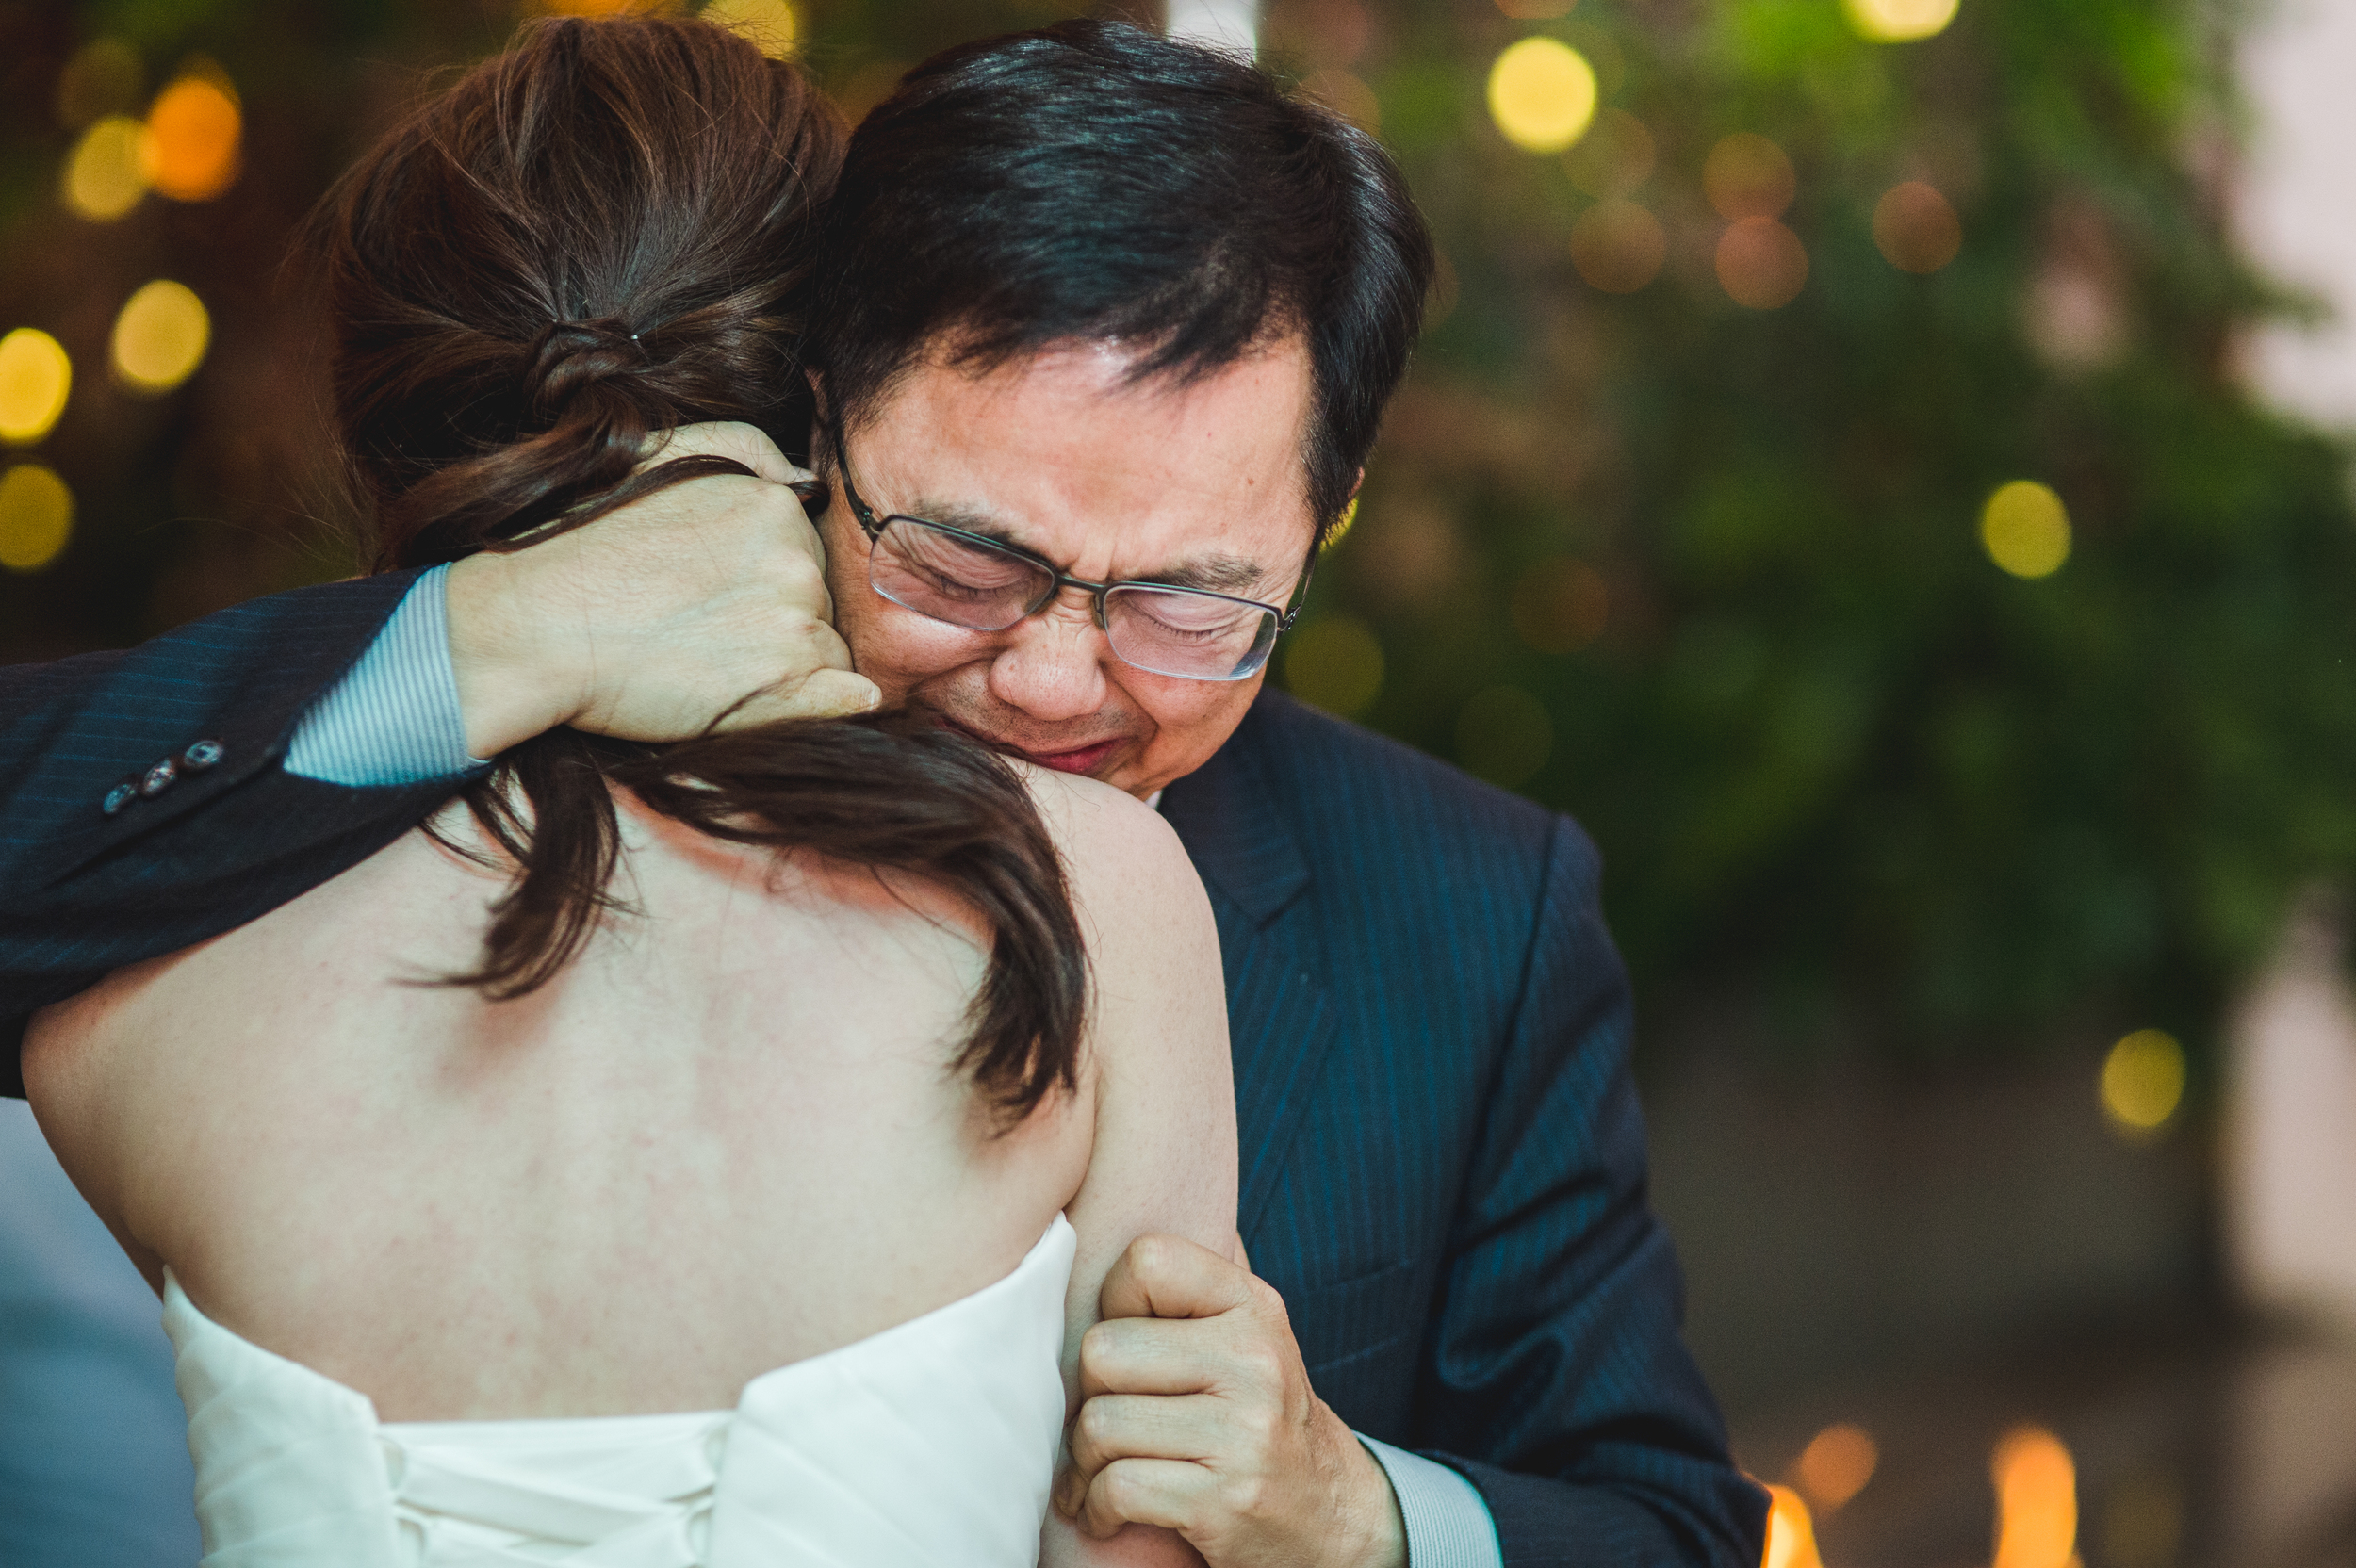 Moment of Daughter and Father DanceWedding Photography San Diego CA-16.jpg